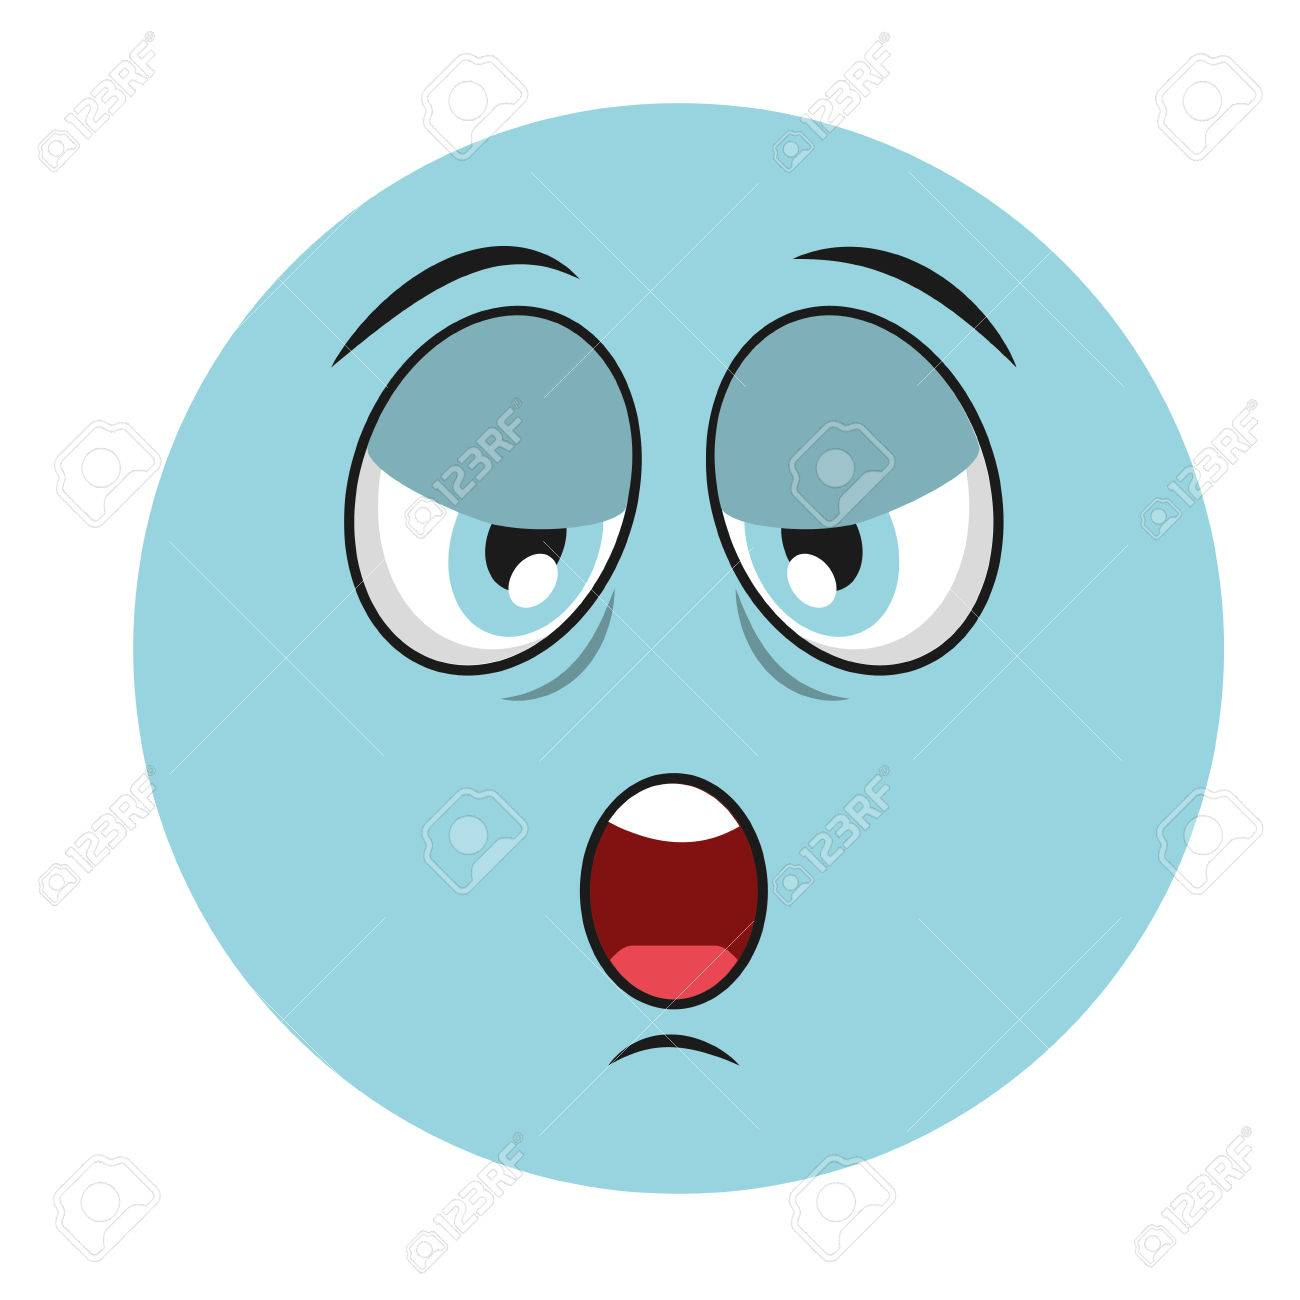 tired cartoon face icon vector illustation character royalty free rh 123rf com Hungry Face Cartoon tired face cartoon images